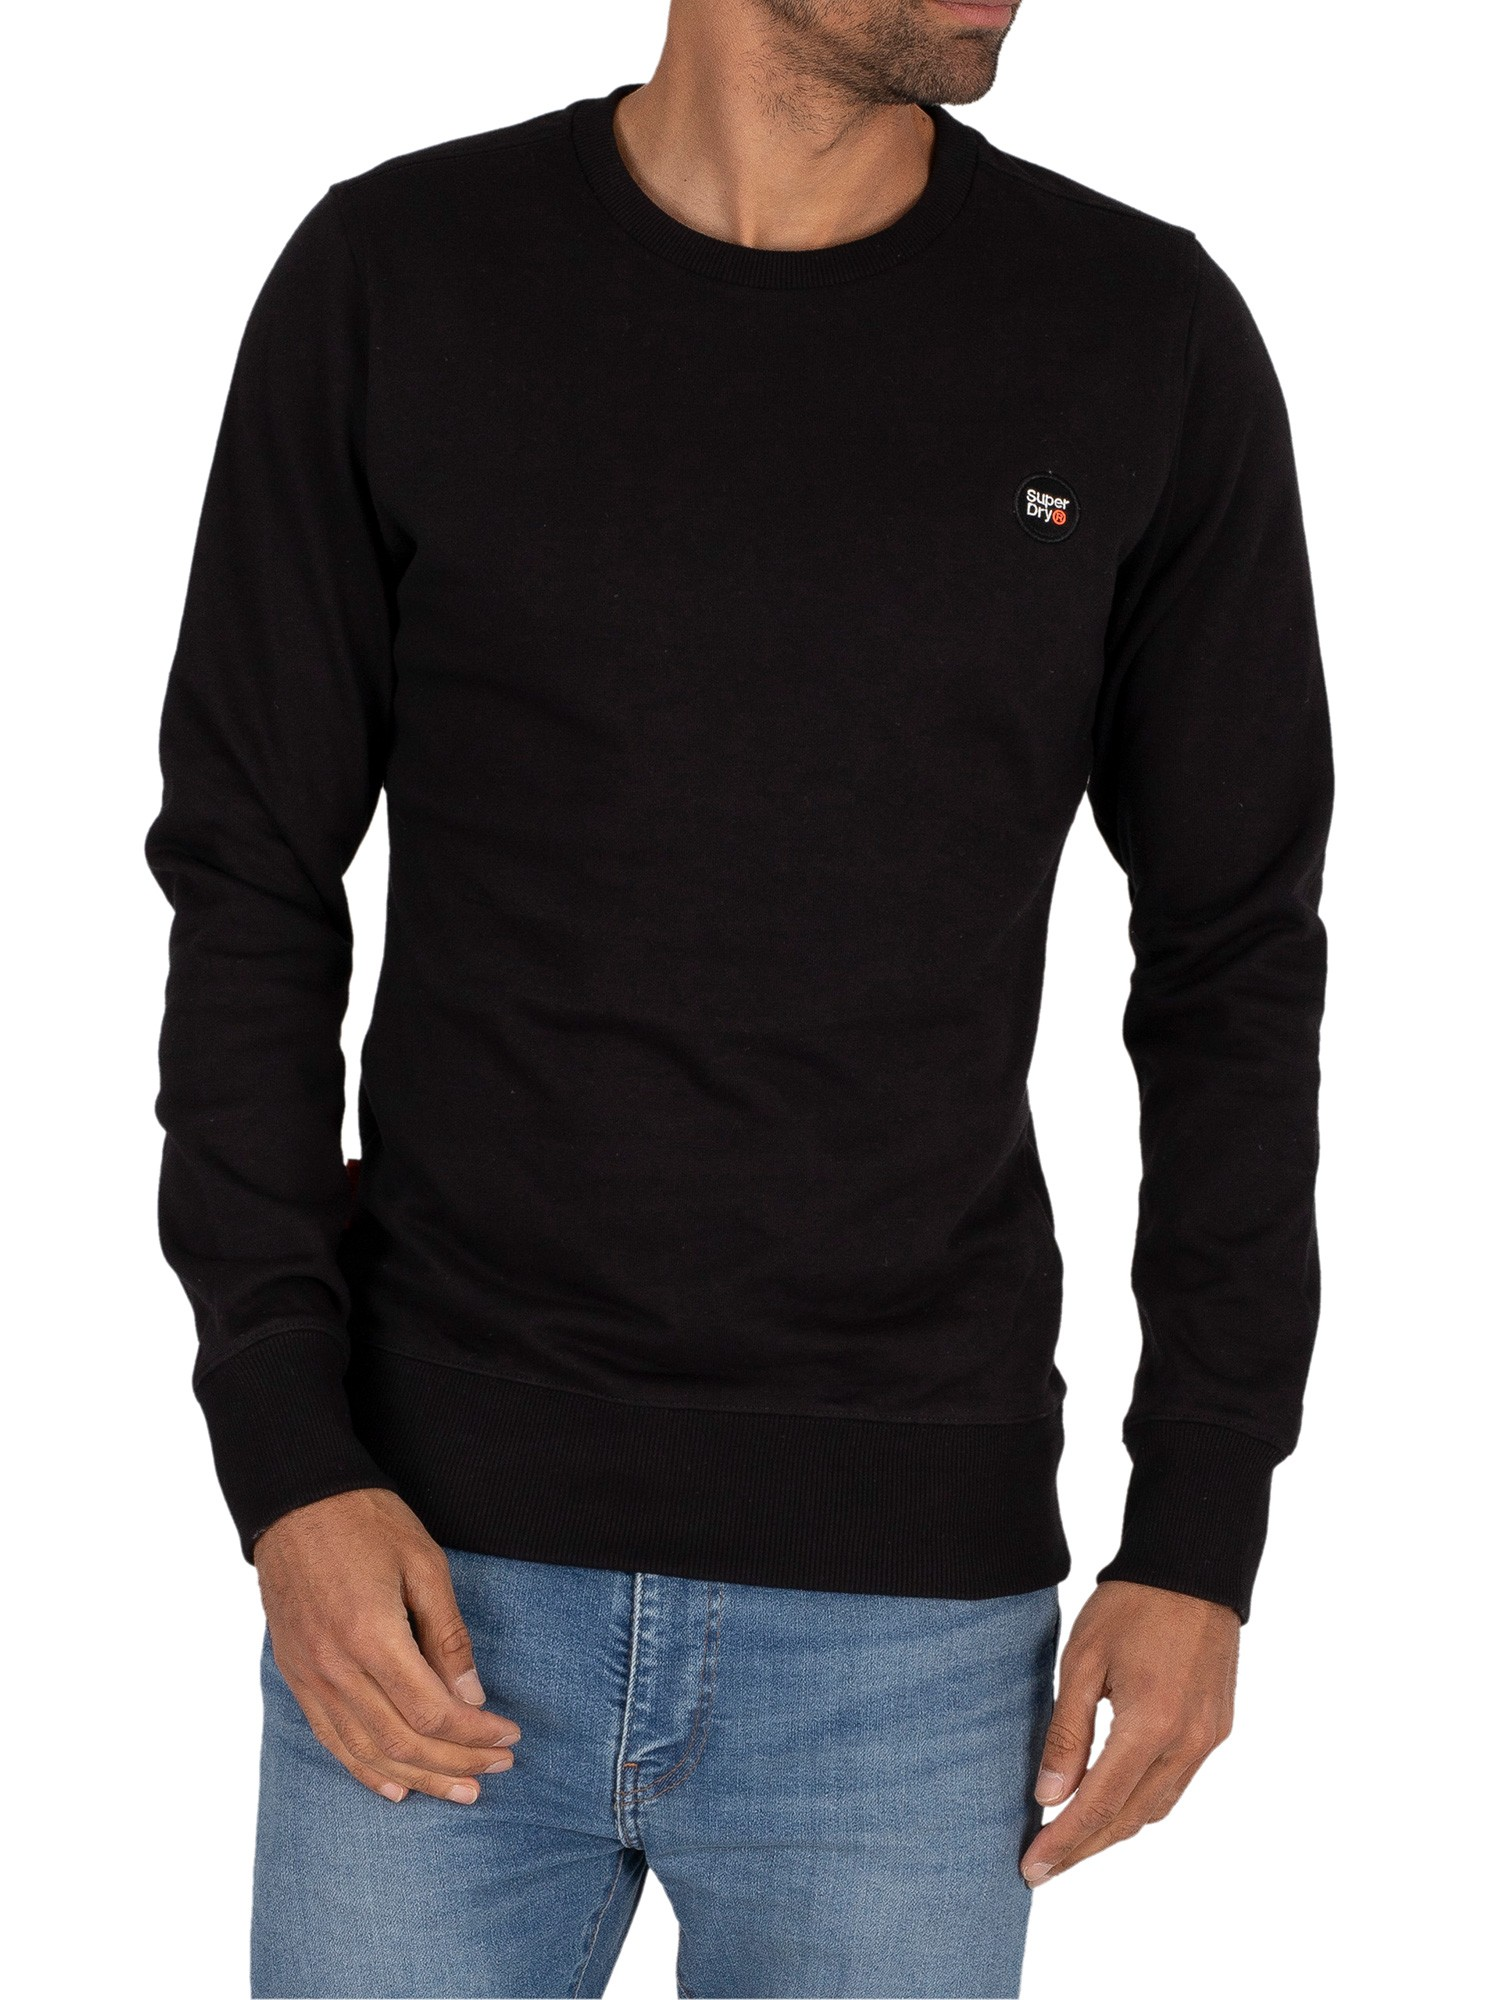 Superdry Collective Sweatshirt - Black